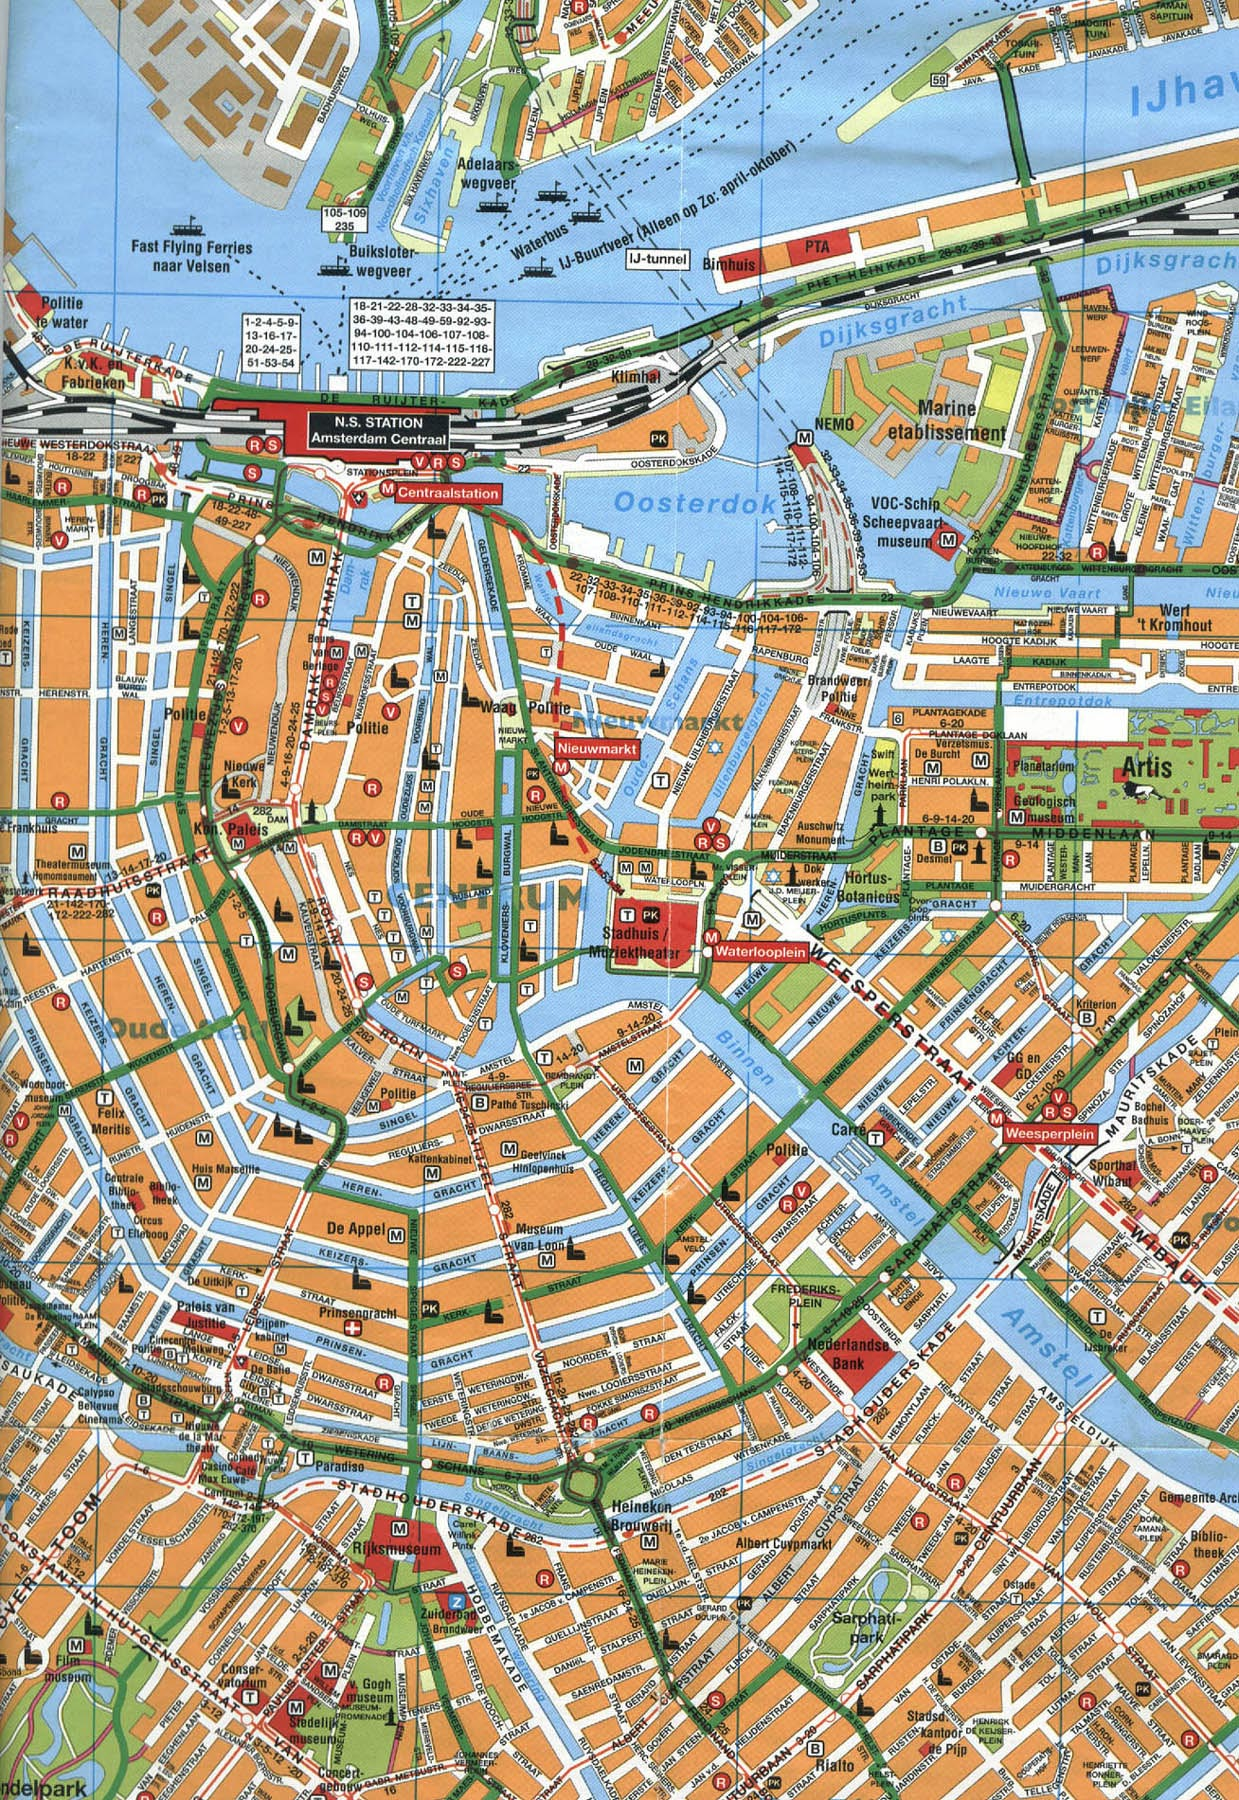 Amsterdam Center Map Amsterdam Netherlands mappery – Amsterdam Tourist Map Pdf